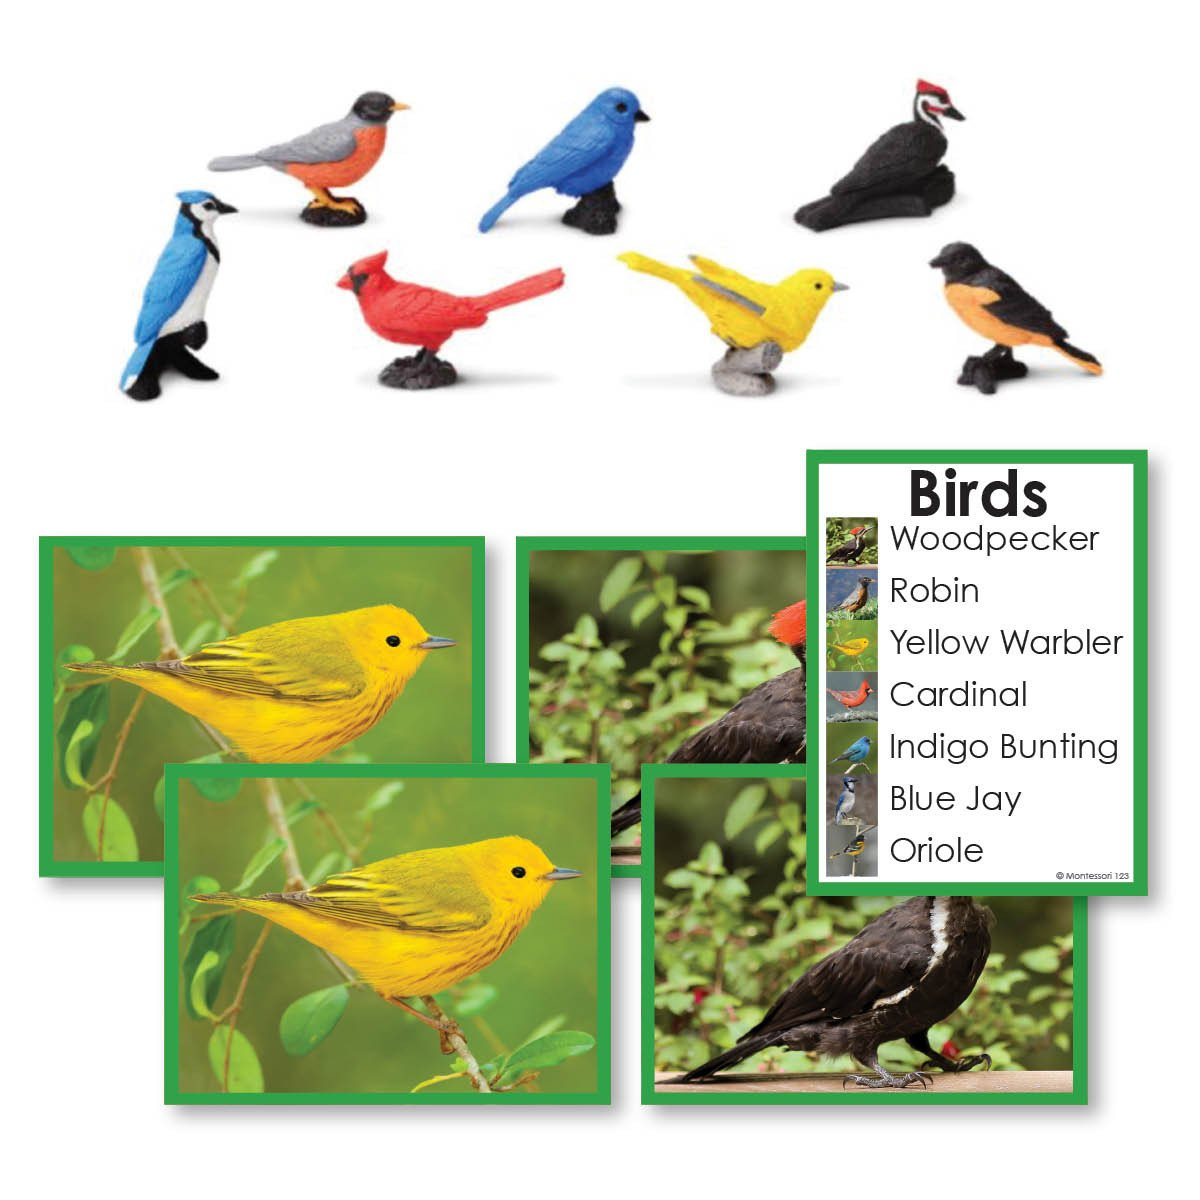 Zoology-Animal Classification/ Identification - Birds Toddler Cards With Objects